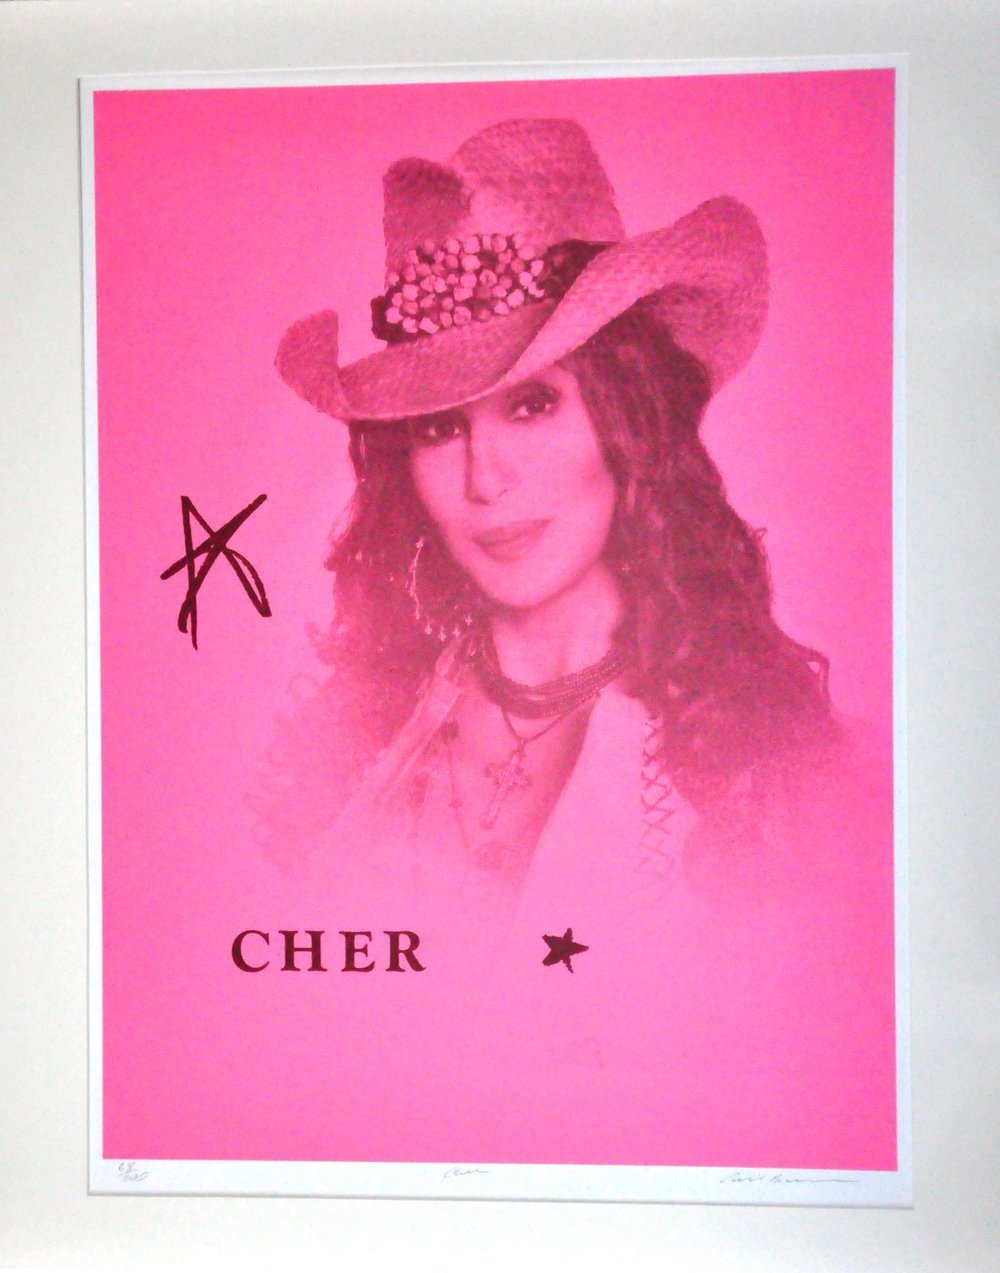 "Cher,  2000, Carl Beam, serigraph on paper, edition 68/200, 30"" x 22"", 2006.05.04, gift of the Milton Winberg Foundation"